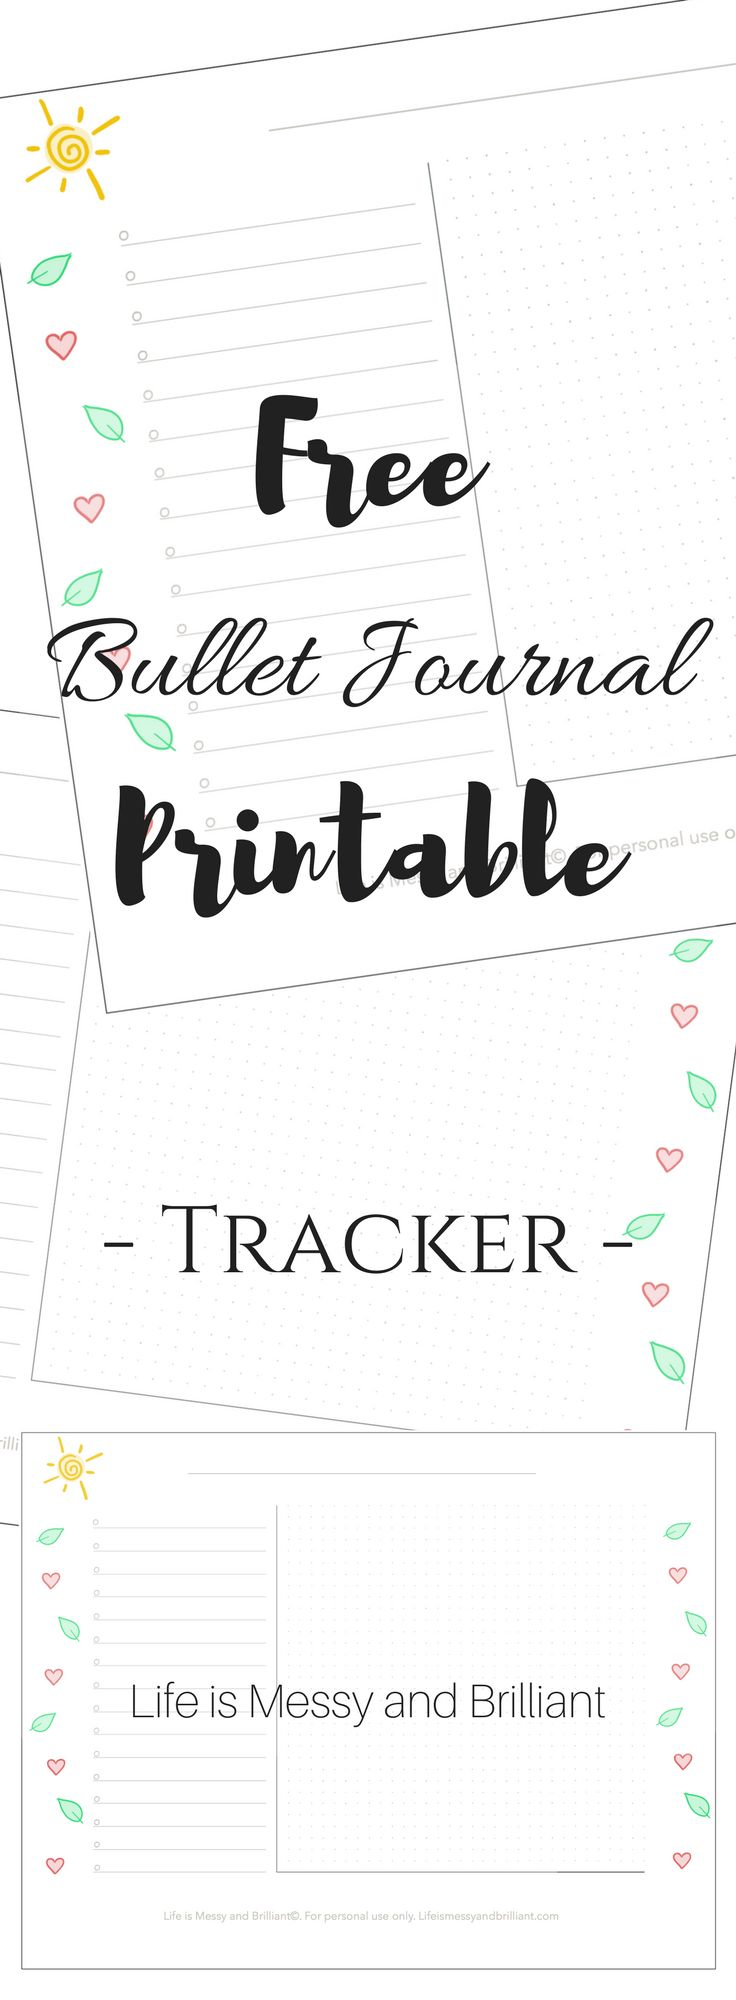 Free bullet journal printables, free printable, bullet journal, free lettering printable, bullet journal mood tracker, bullet journal layout, bullet journal setup, bullet journal weekly, bullet journal inspiration, bullet journal ideas, bullet journal printables, bullet journal monthly, how to create bullet journal, how to bullet journal, digital bullet journal, iPad bullet journal, bullet journal tutorial, art journaling, ipad lettering